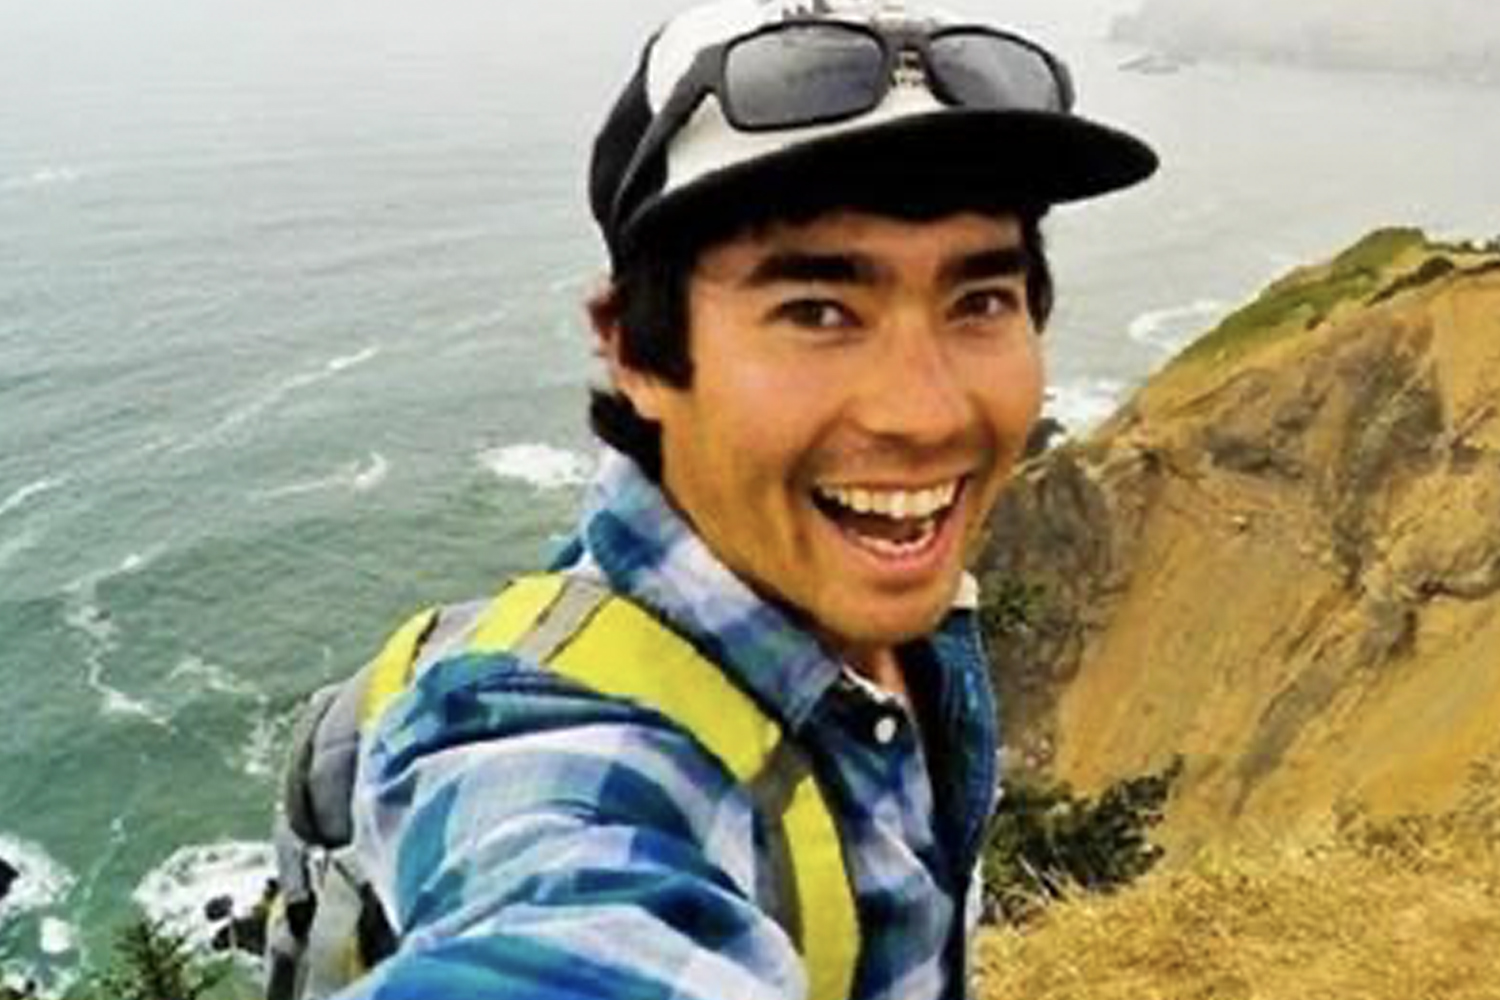 Reflecting on the death of John Allen Chau